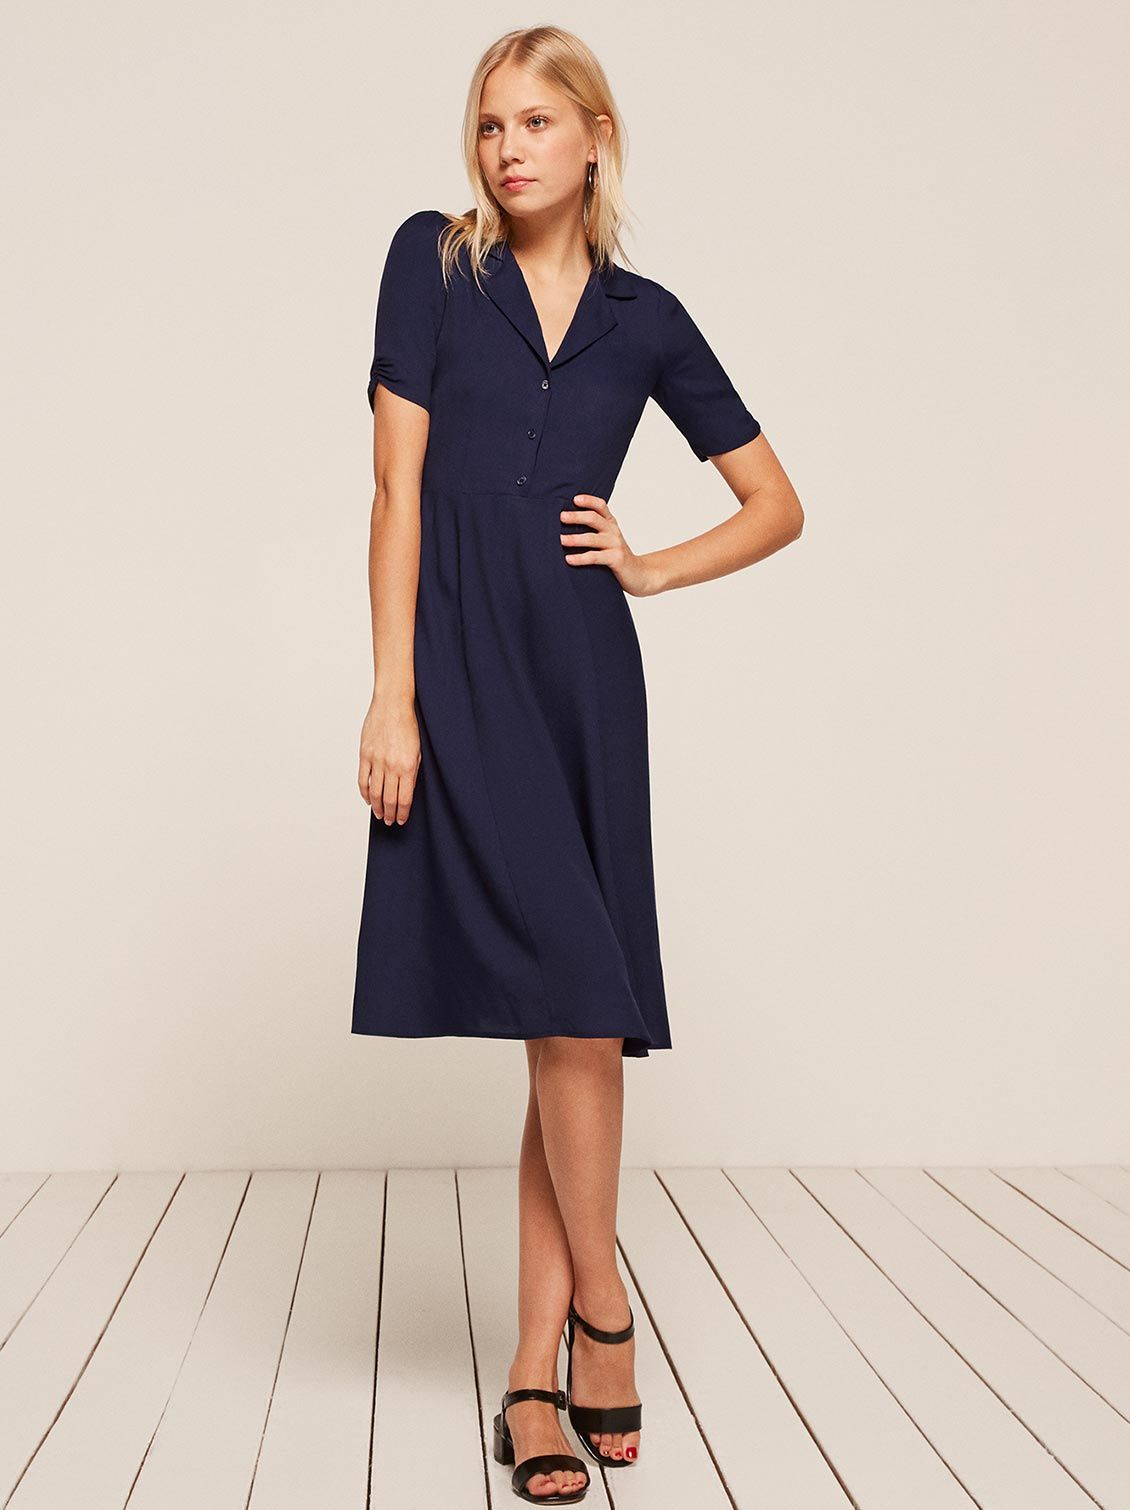 Aail Shirt Dress Navy Blue Reformation